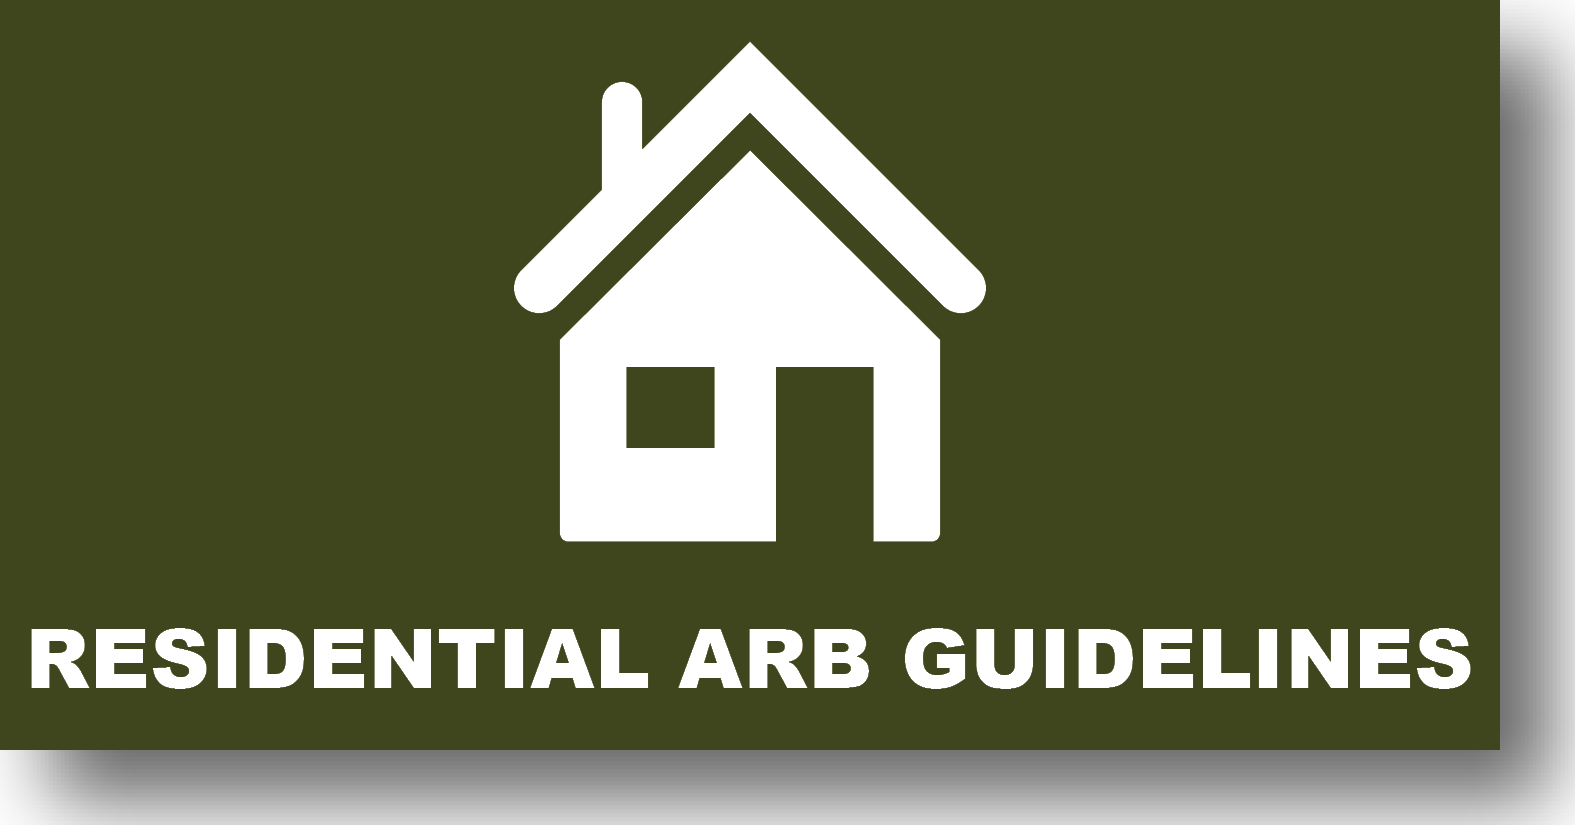 Residential ARB Guidelines